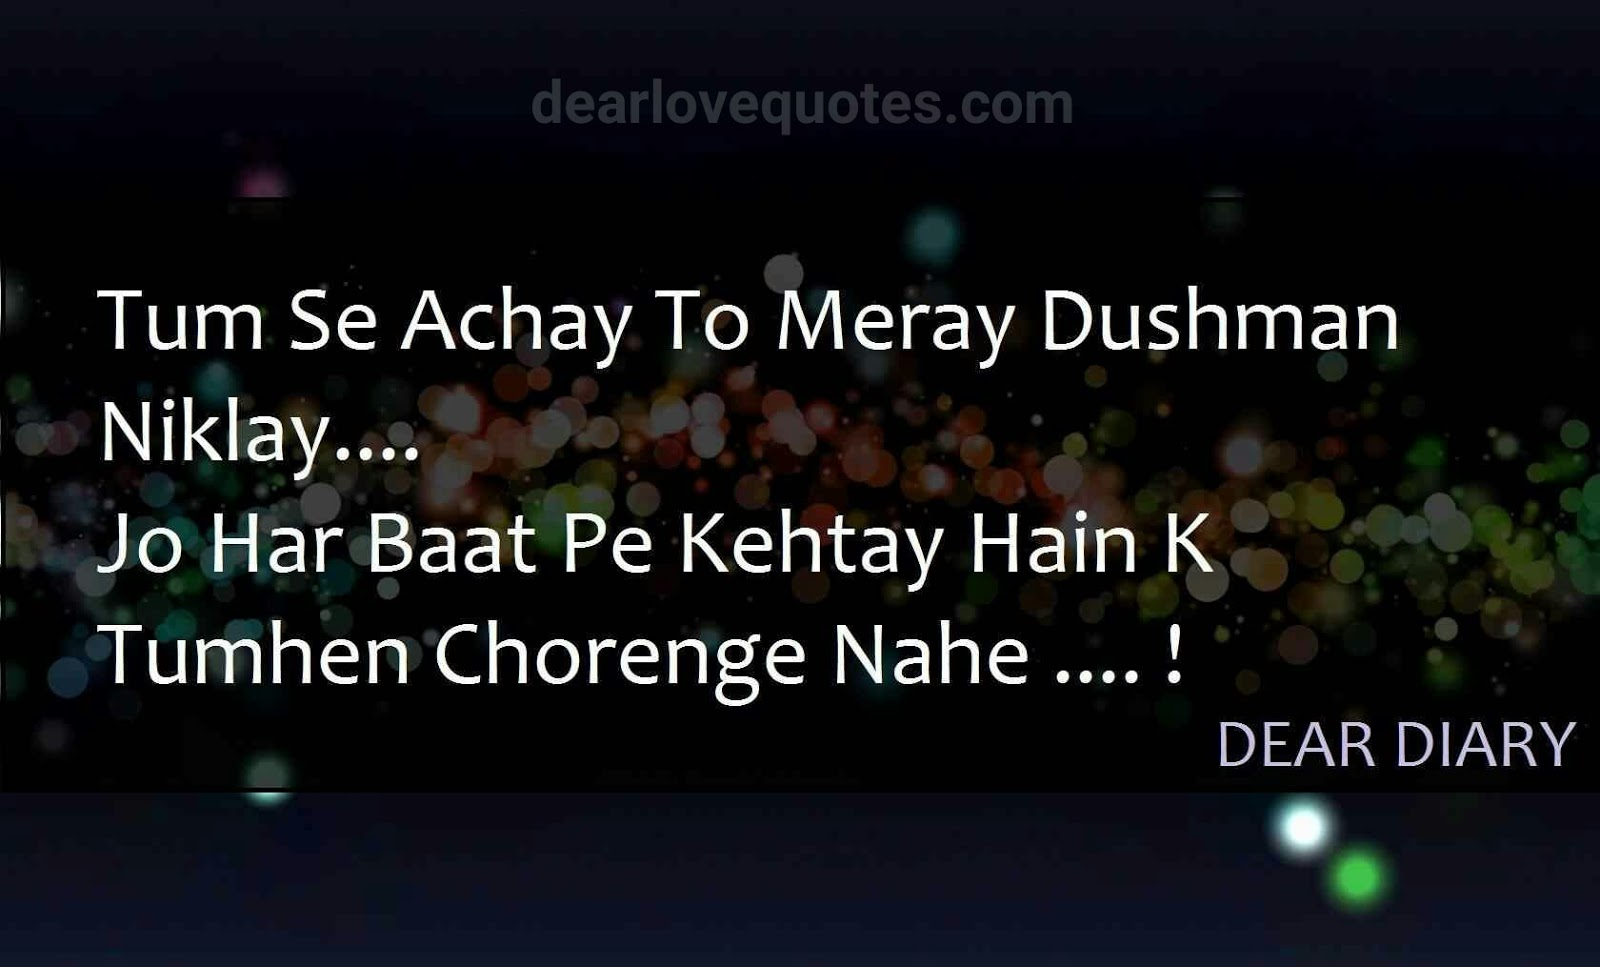 20+ Dear Diary Images with Love Quotes, Shayari and Status